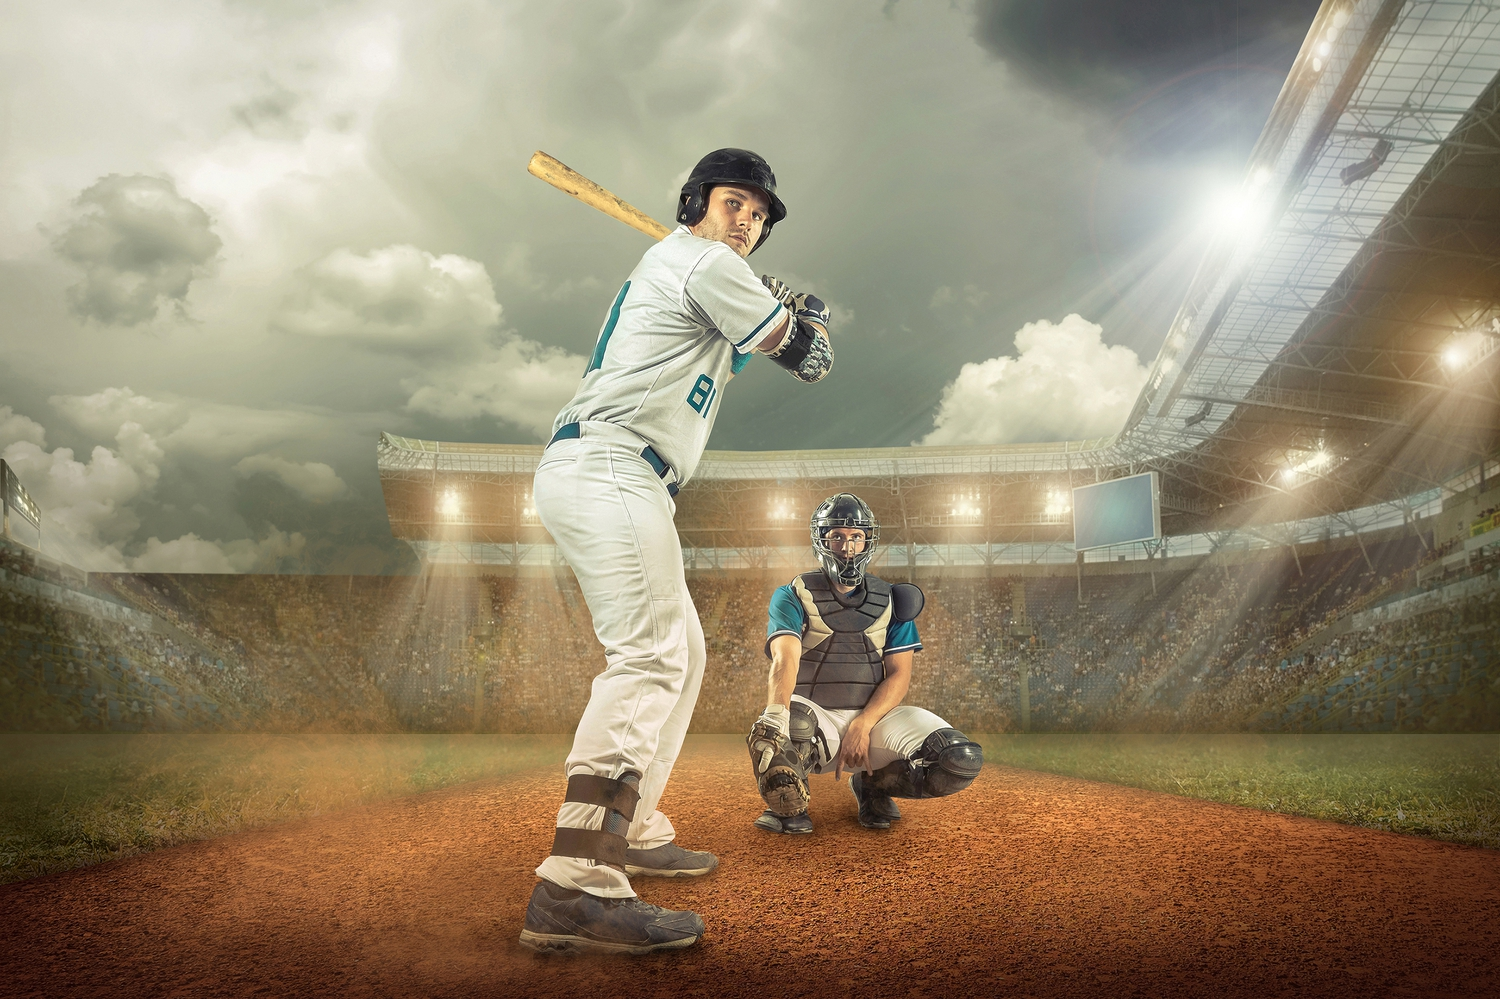 bigstock-Baseball-players-in-dynamic-ac-247634668mgz_2560.jpg